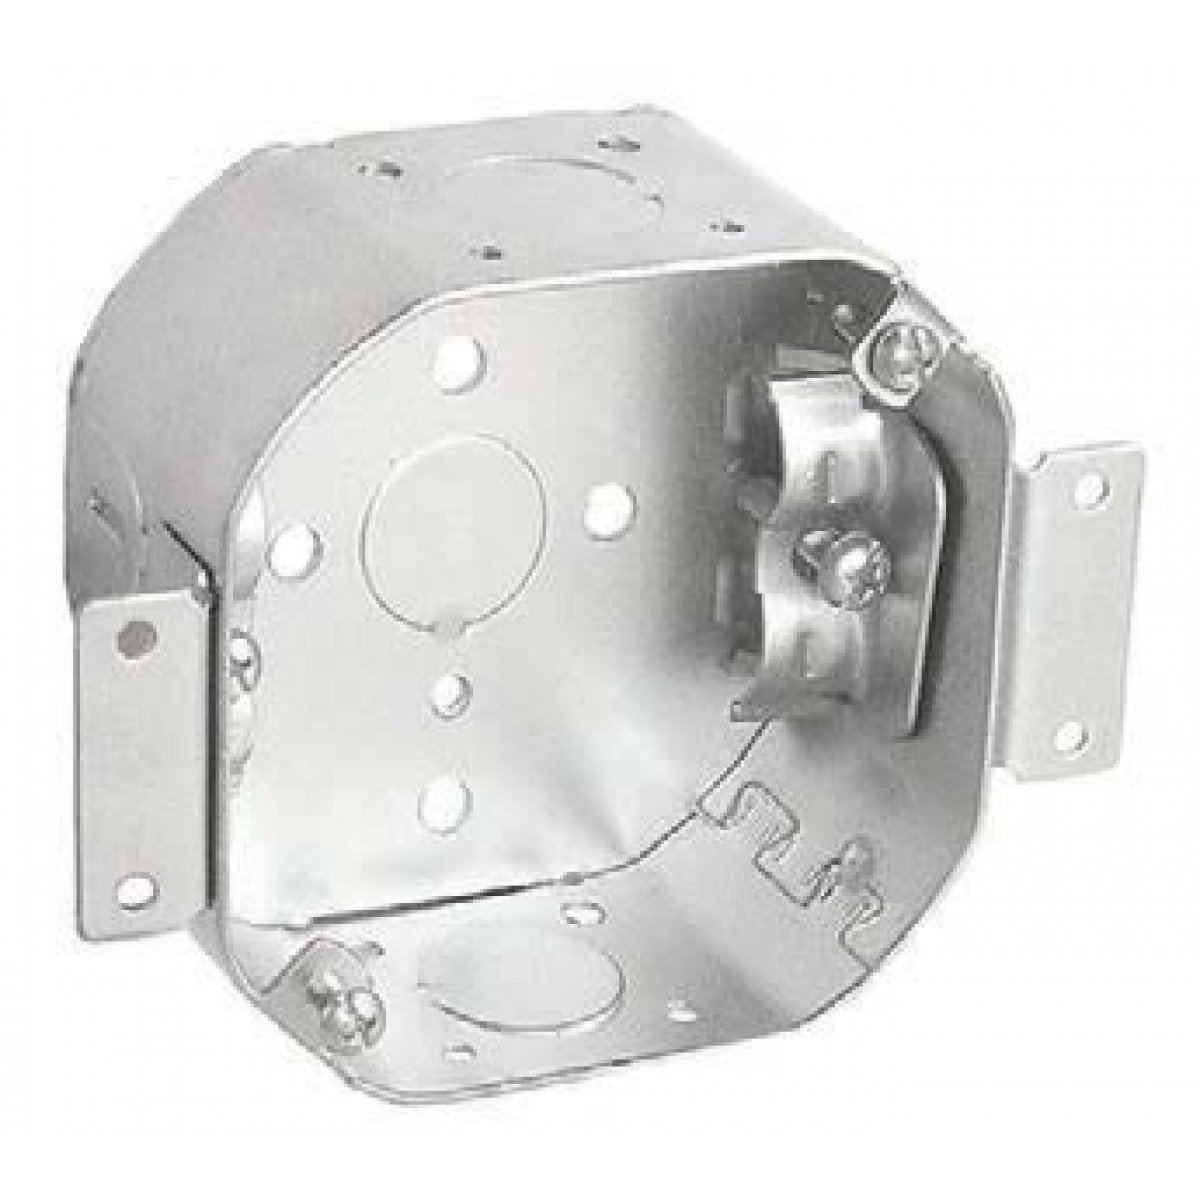 1 Pc, 4 In. Octagon Cut In Old Work Box, 2-1/8 In. Deep, (4) Nm Clamps & (1) 1/2 In. Bottom Knockout, .0625 Galvanized Steel